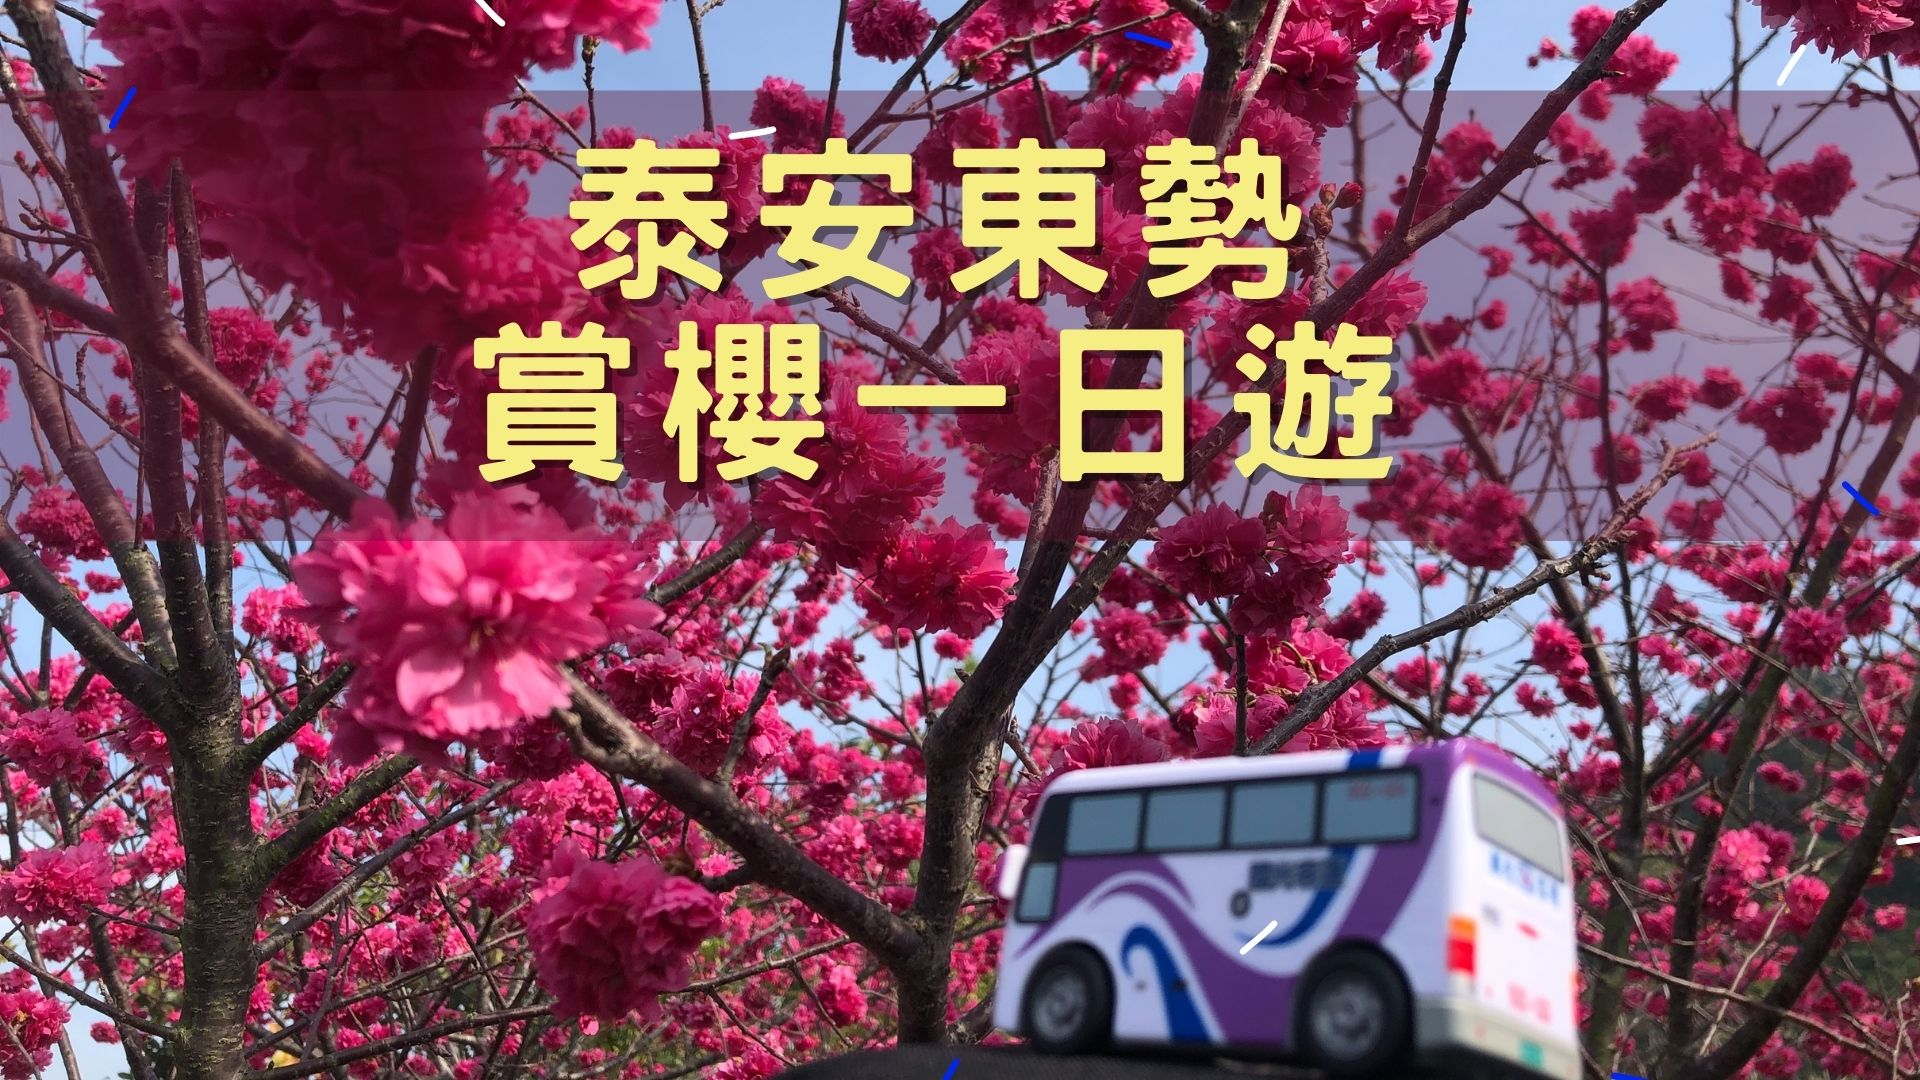 https://kw-travel.com.tw/wp-content/uploads/2019/08/泰安賞櫻東勢林場.jpg